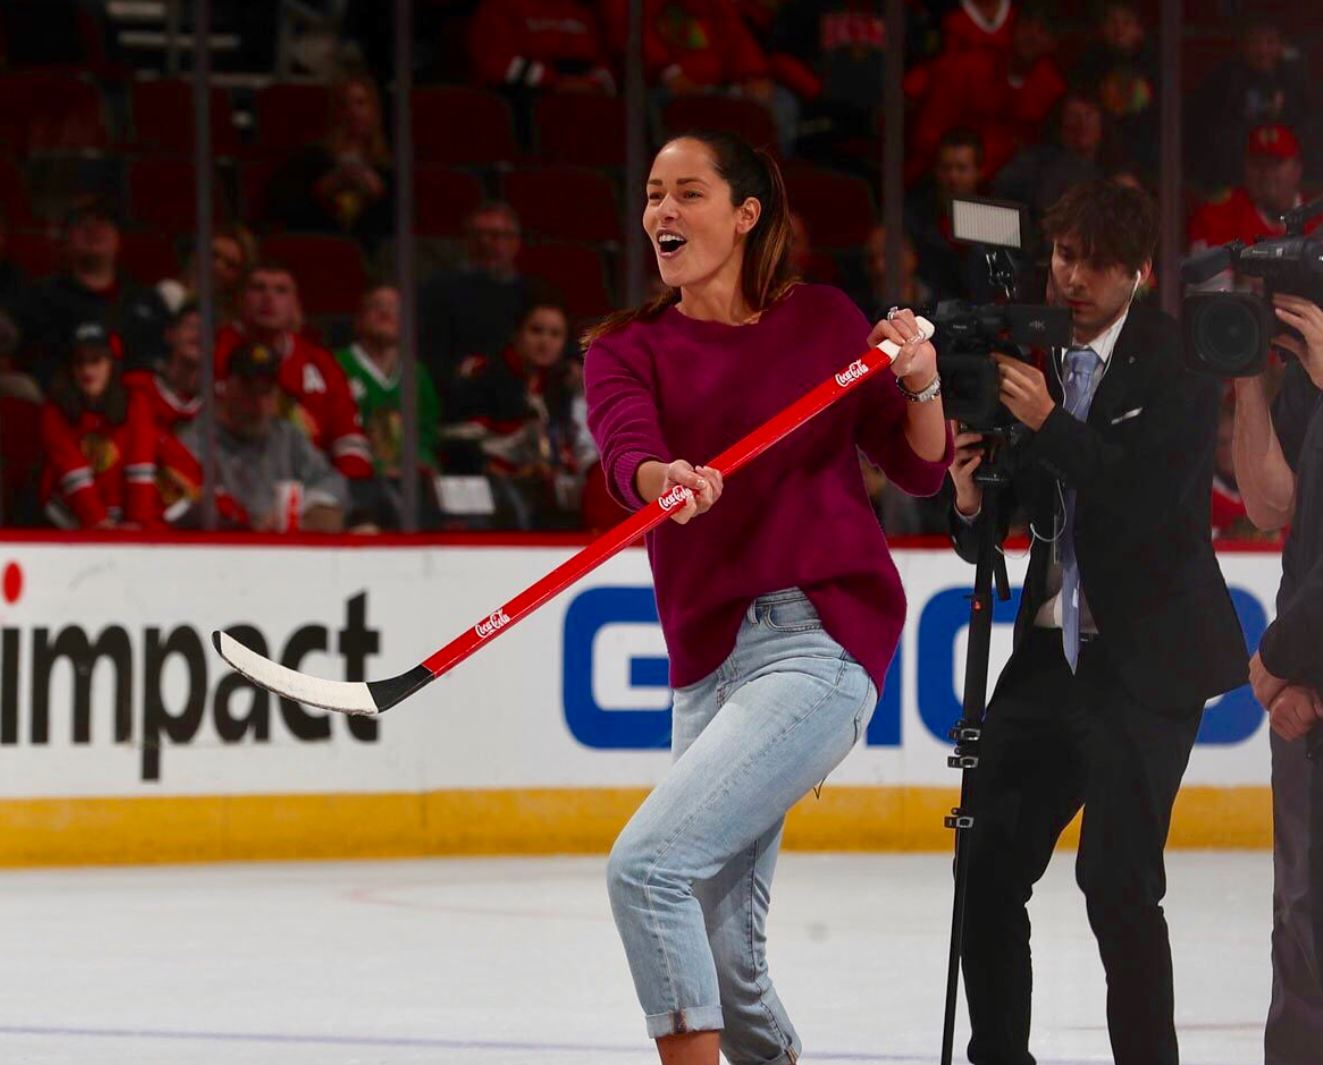 Ana Ivanovic's Hockey Career Starts with a Goal!